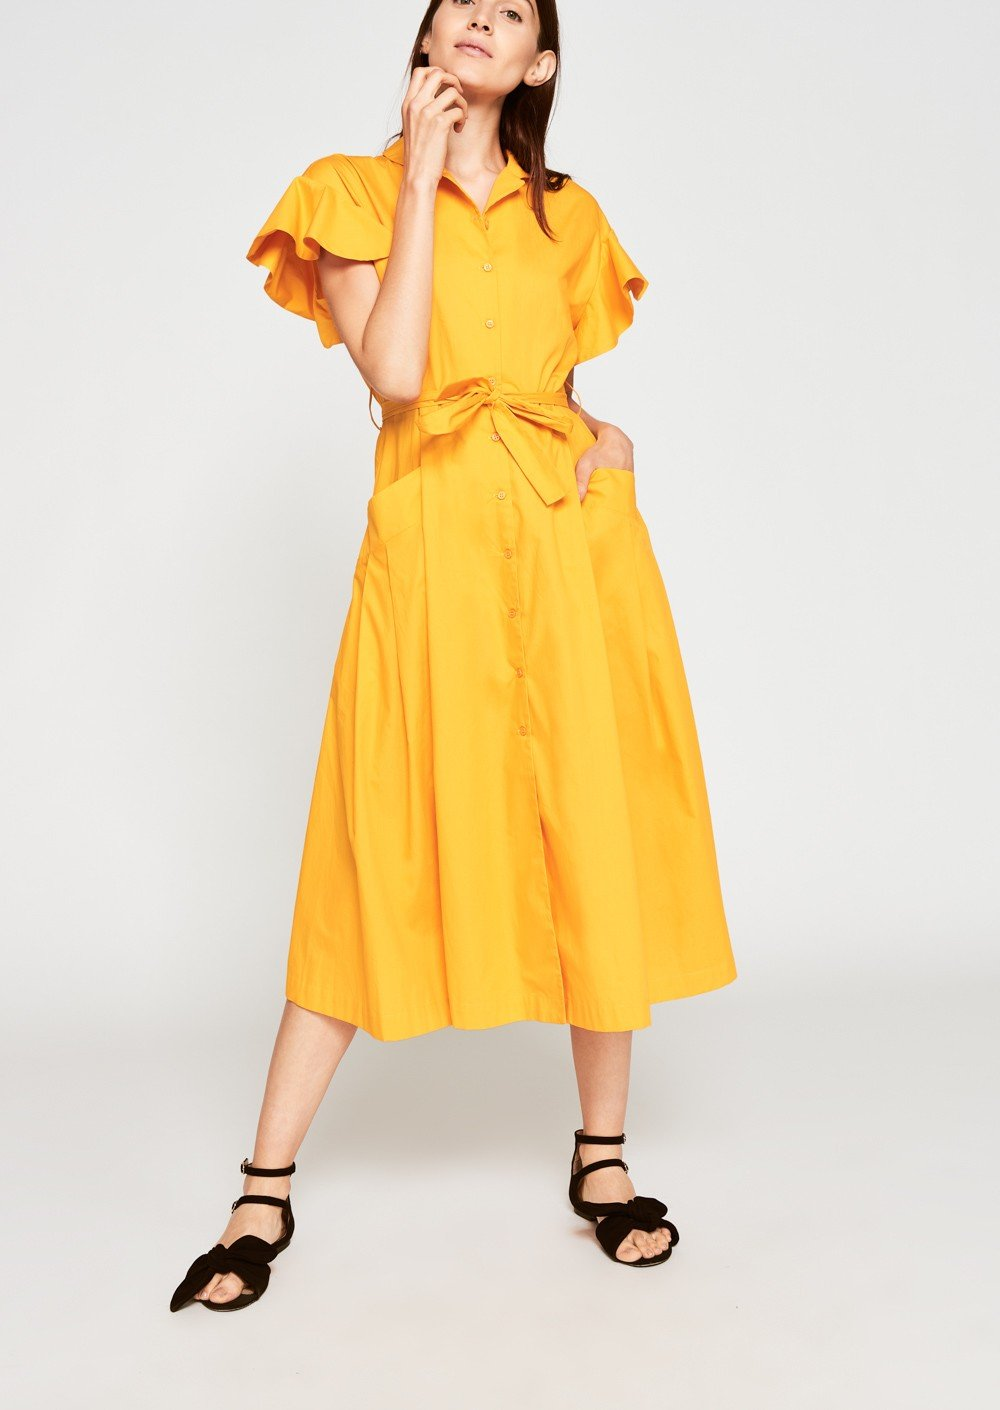 Saffron Poplin Dress from Brigitte & Stone